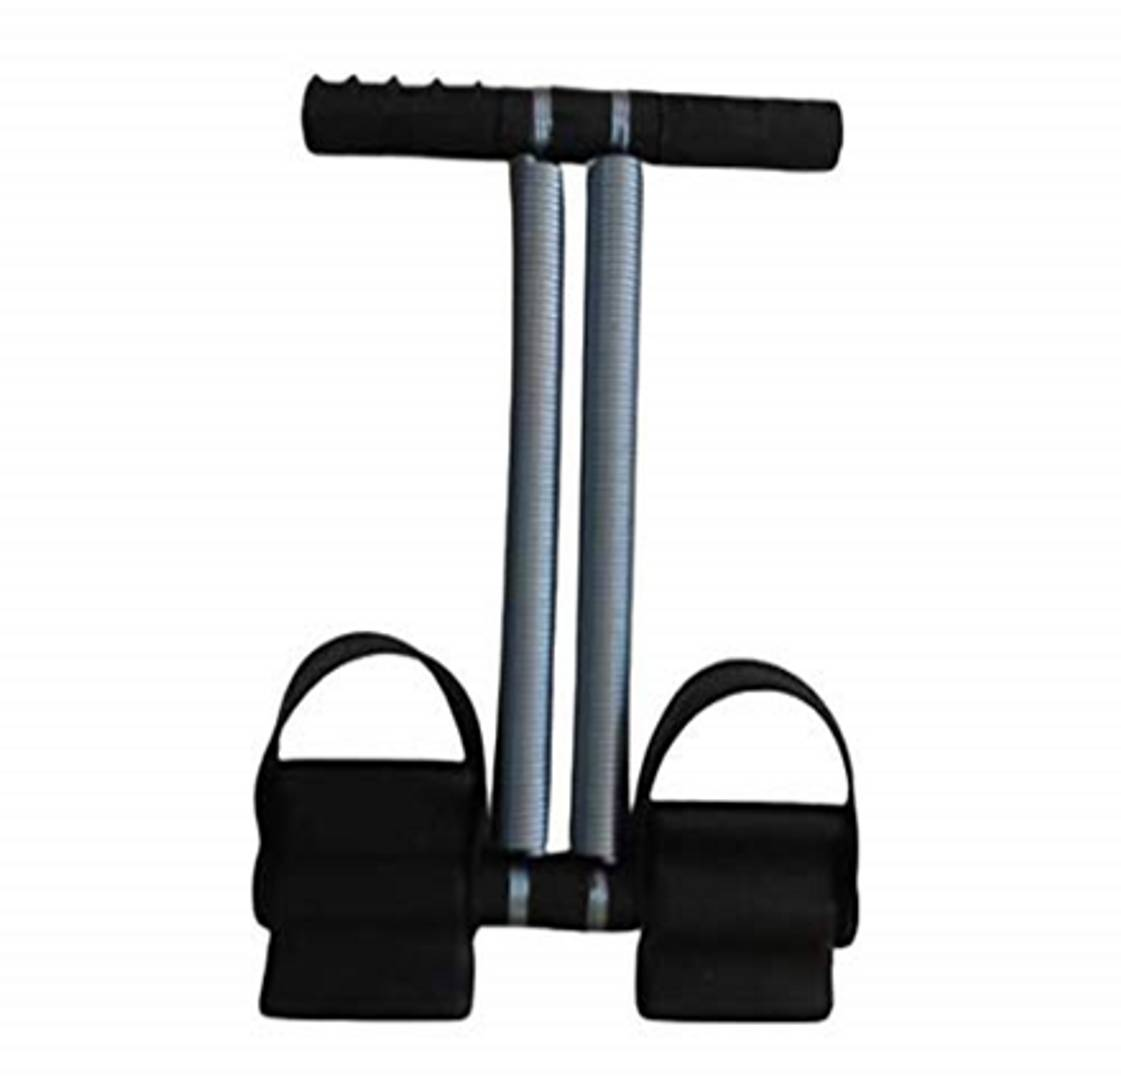 Tummy Trimmer Ab Exerciser - Fitness Equipment for Home